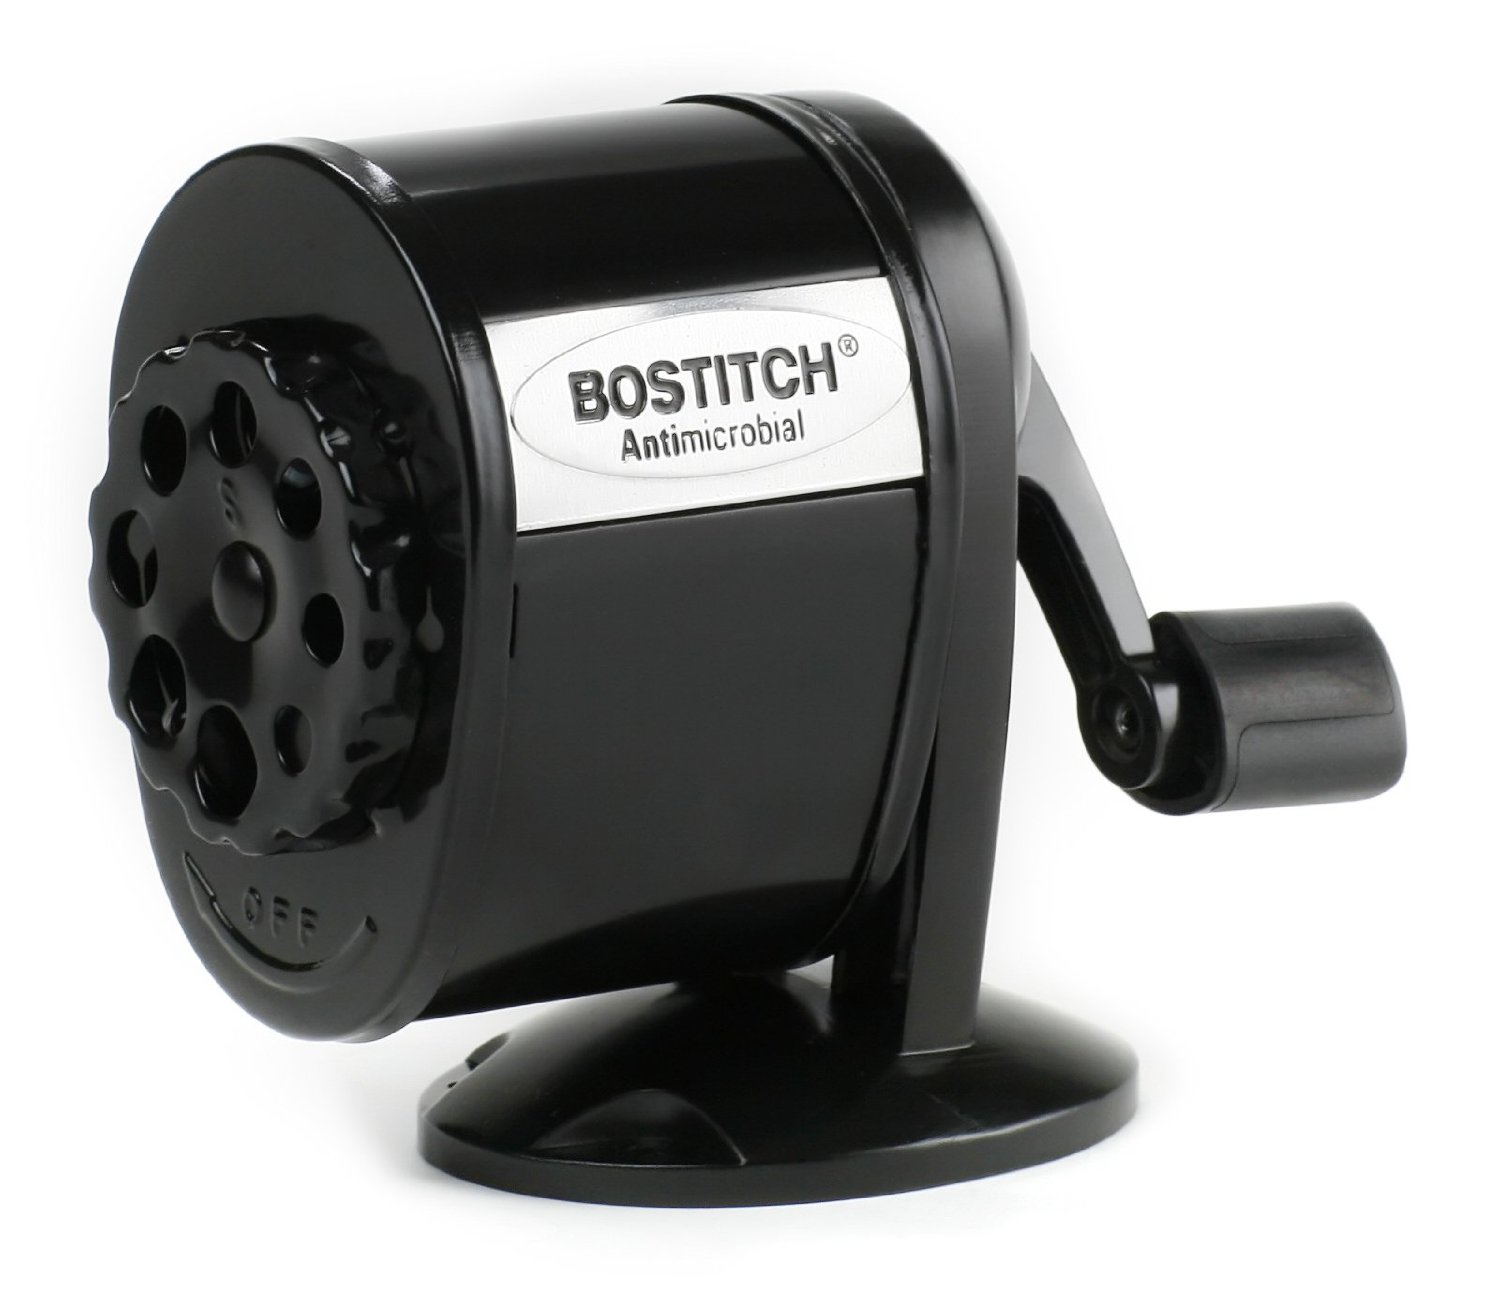 Stanley Bostitch 8 Hole Manual Pencil Sharpener Review